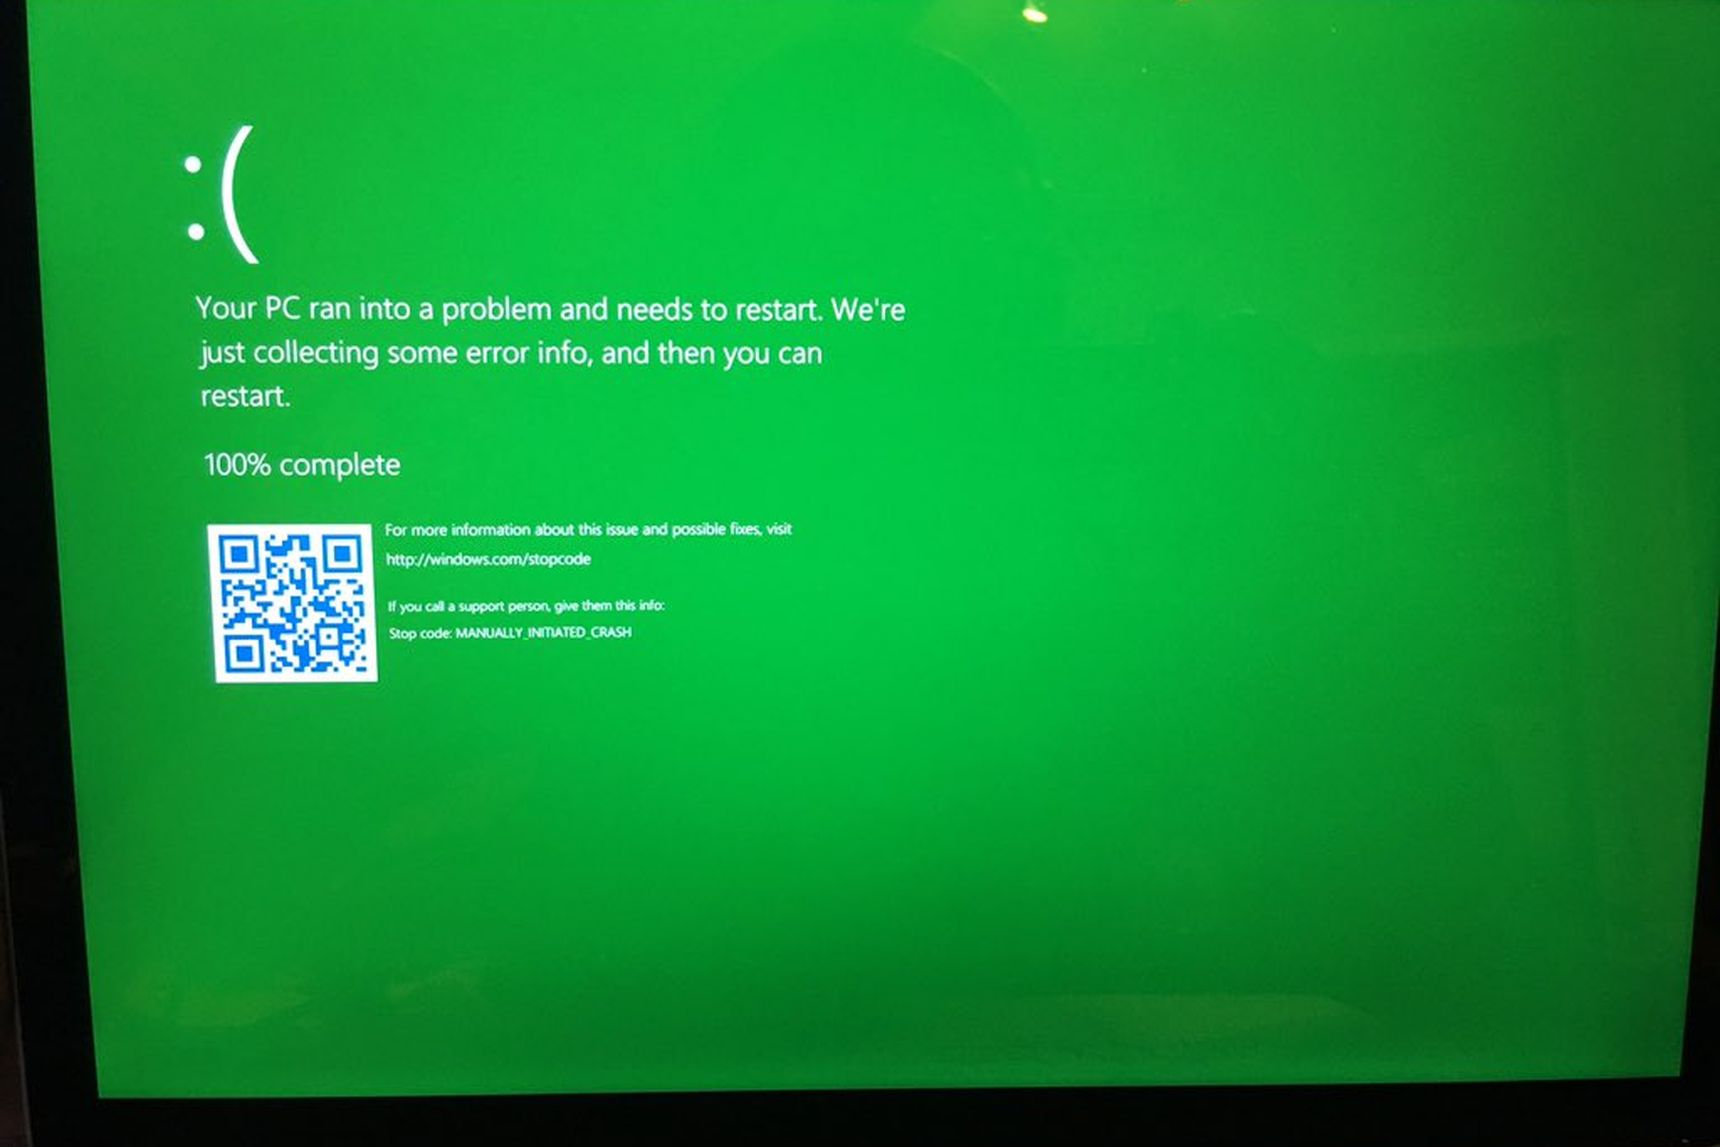 windows 10 insiders will now get a greener version of bsod